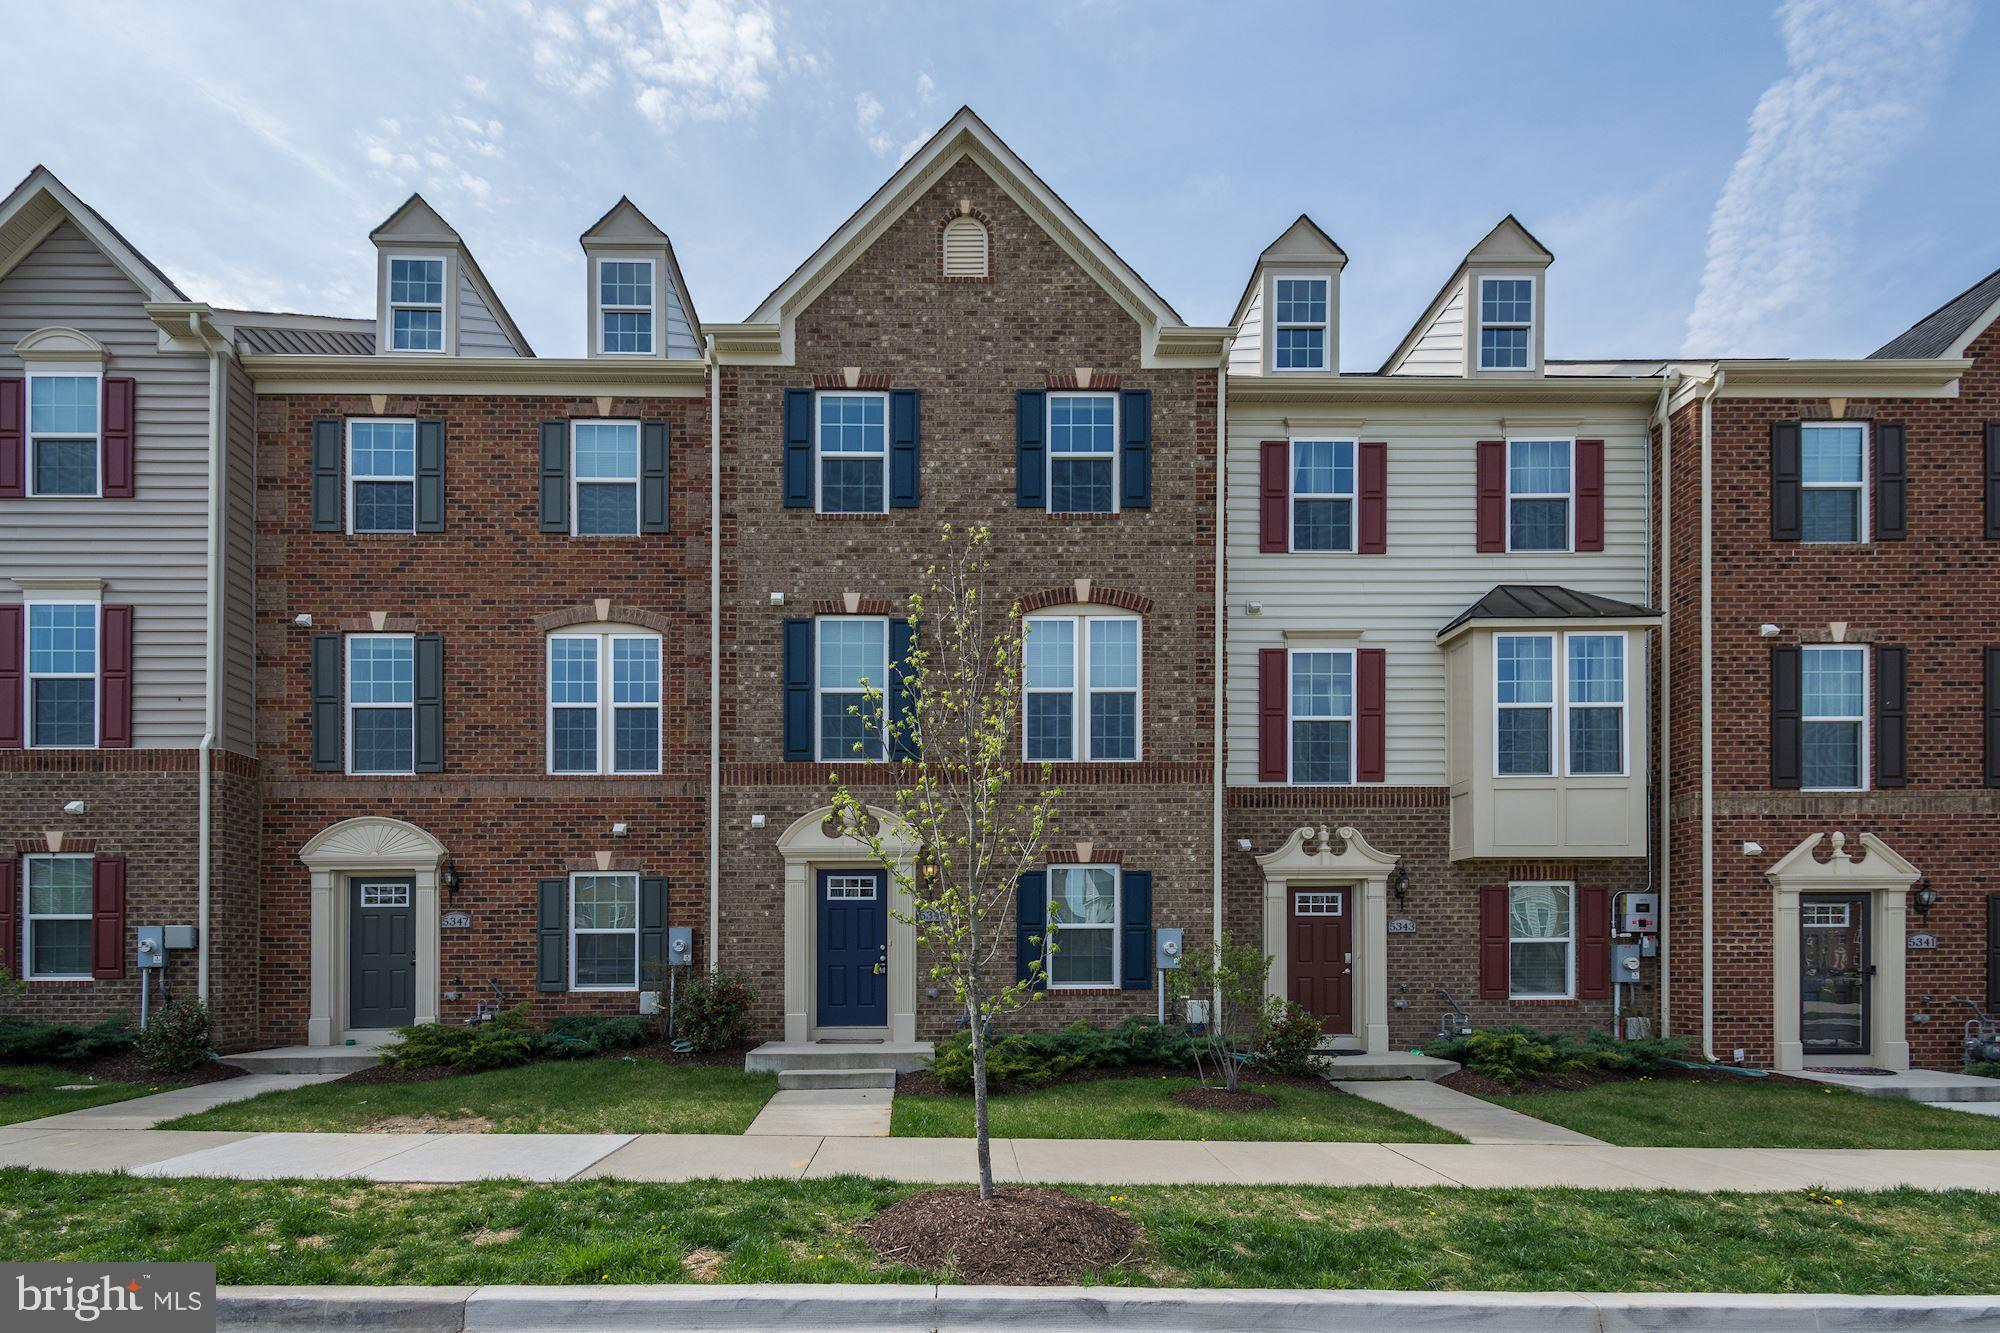 5345 S CENTER DRIVE, GREENBELT, MD 20770